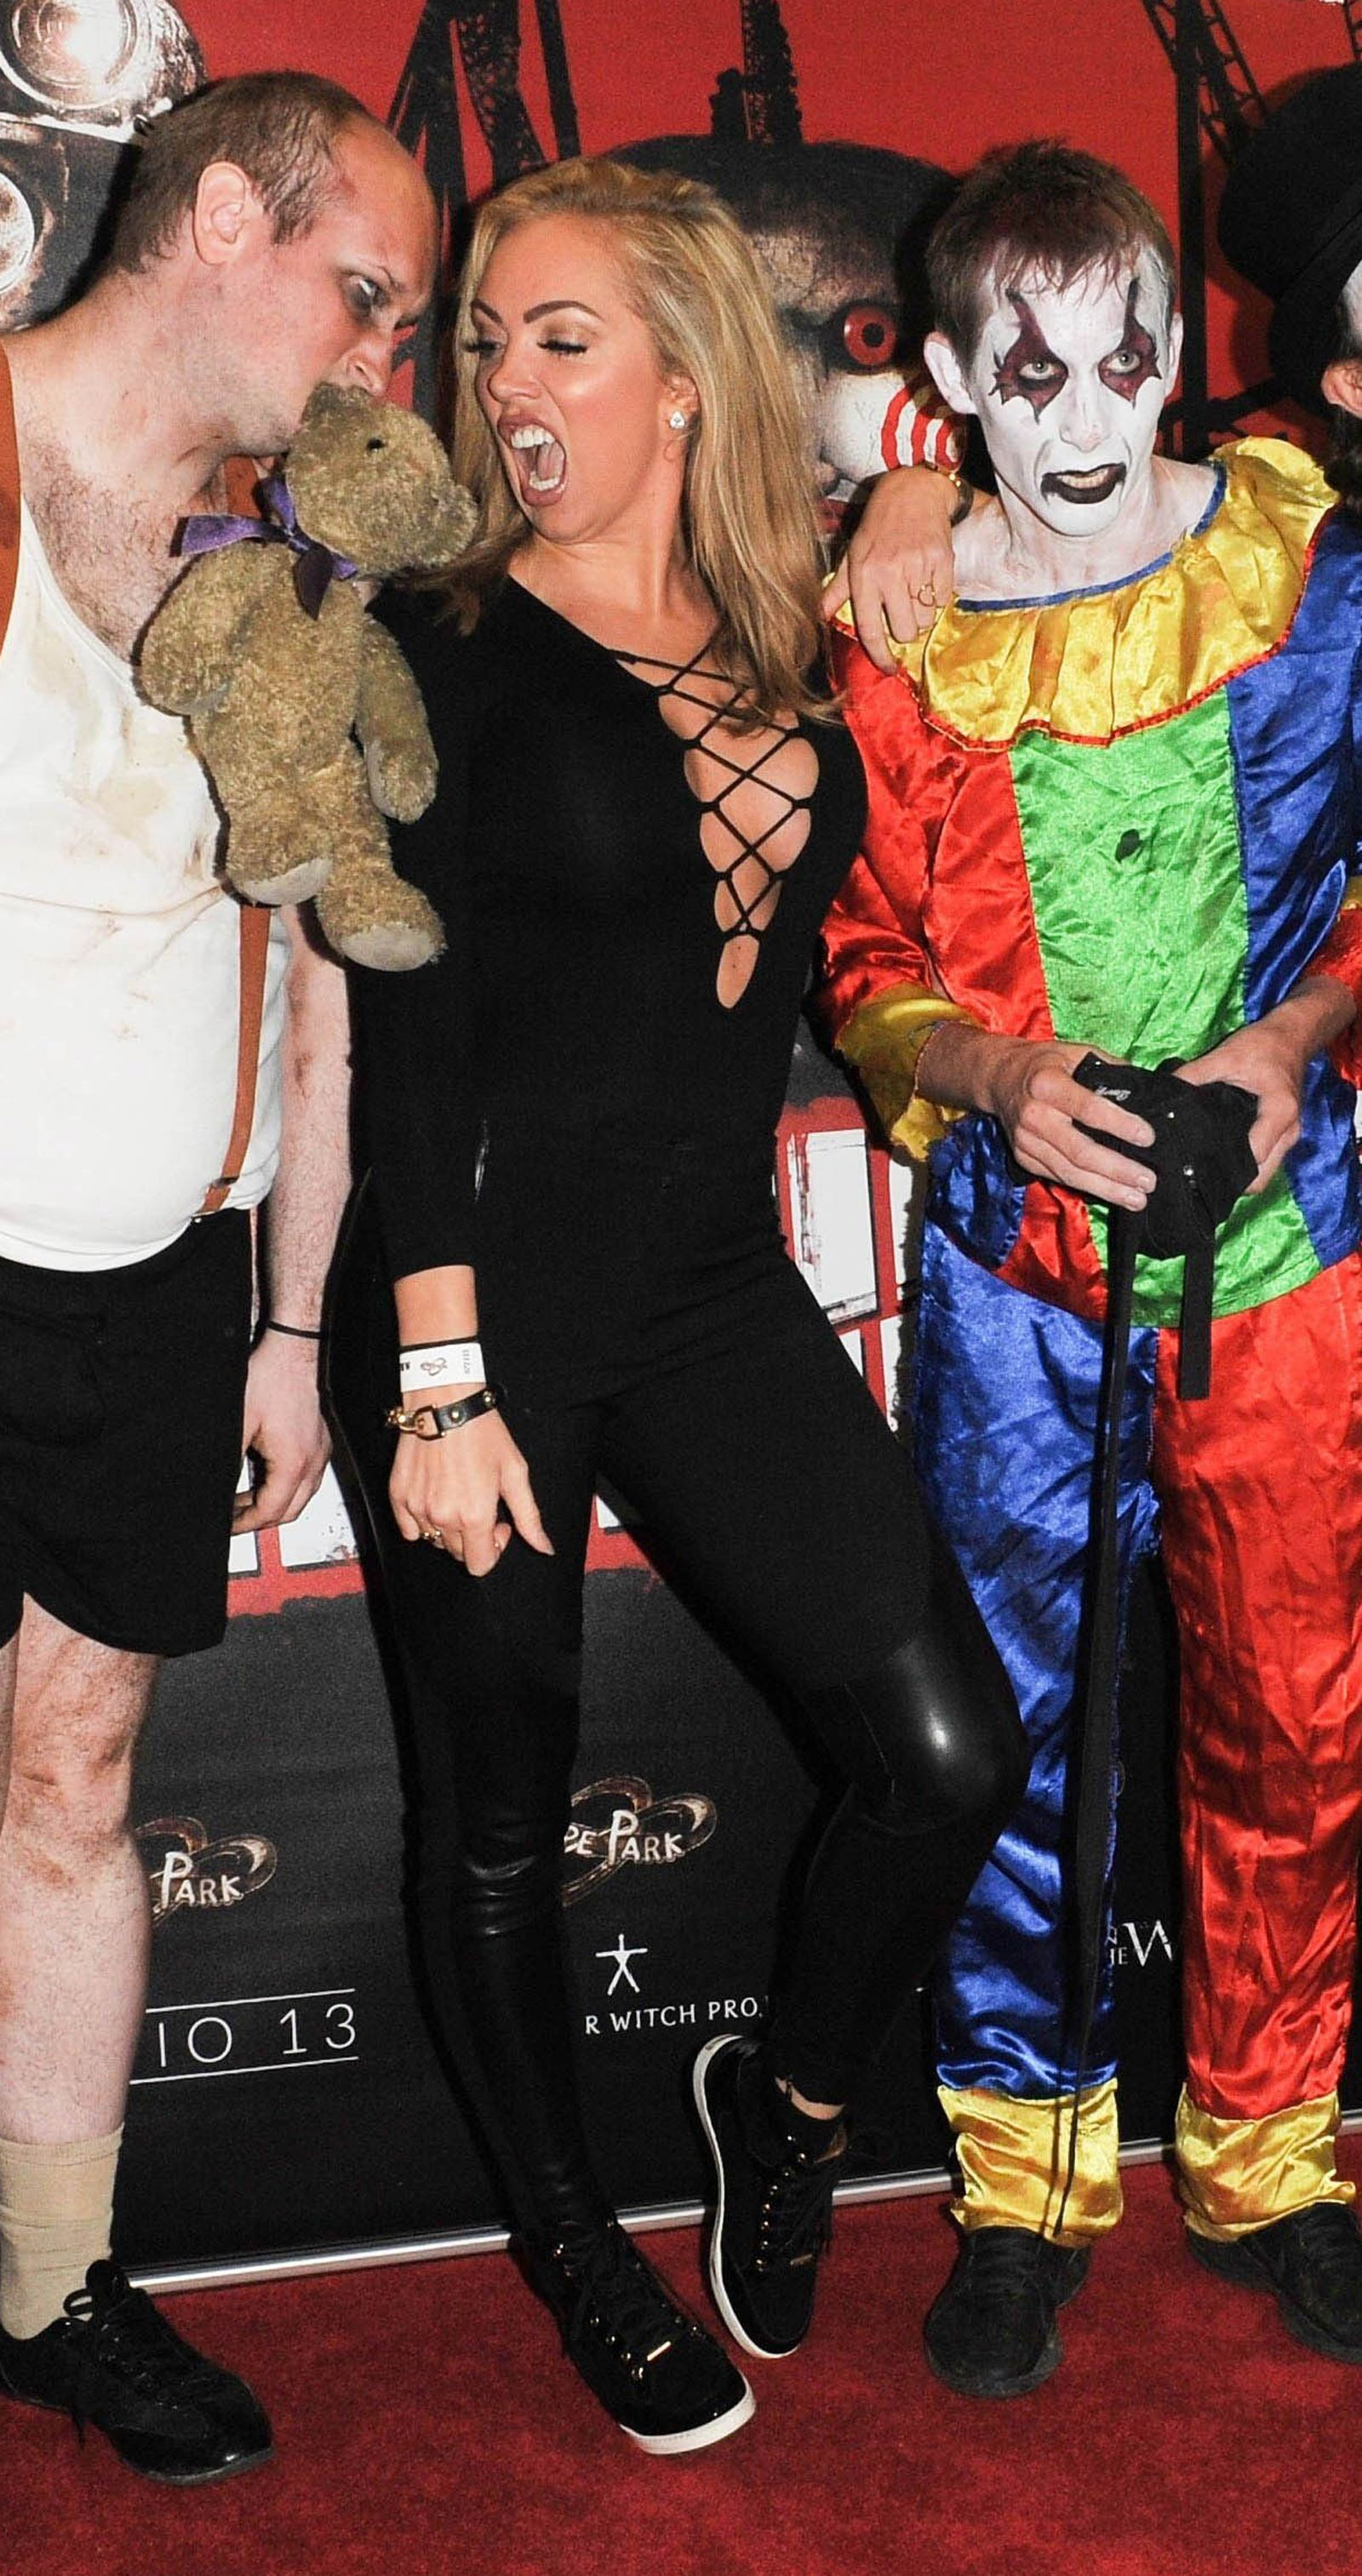 Aisleyne Horgan Wallace at Thorpe Park Fright Nights